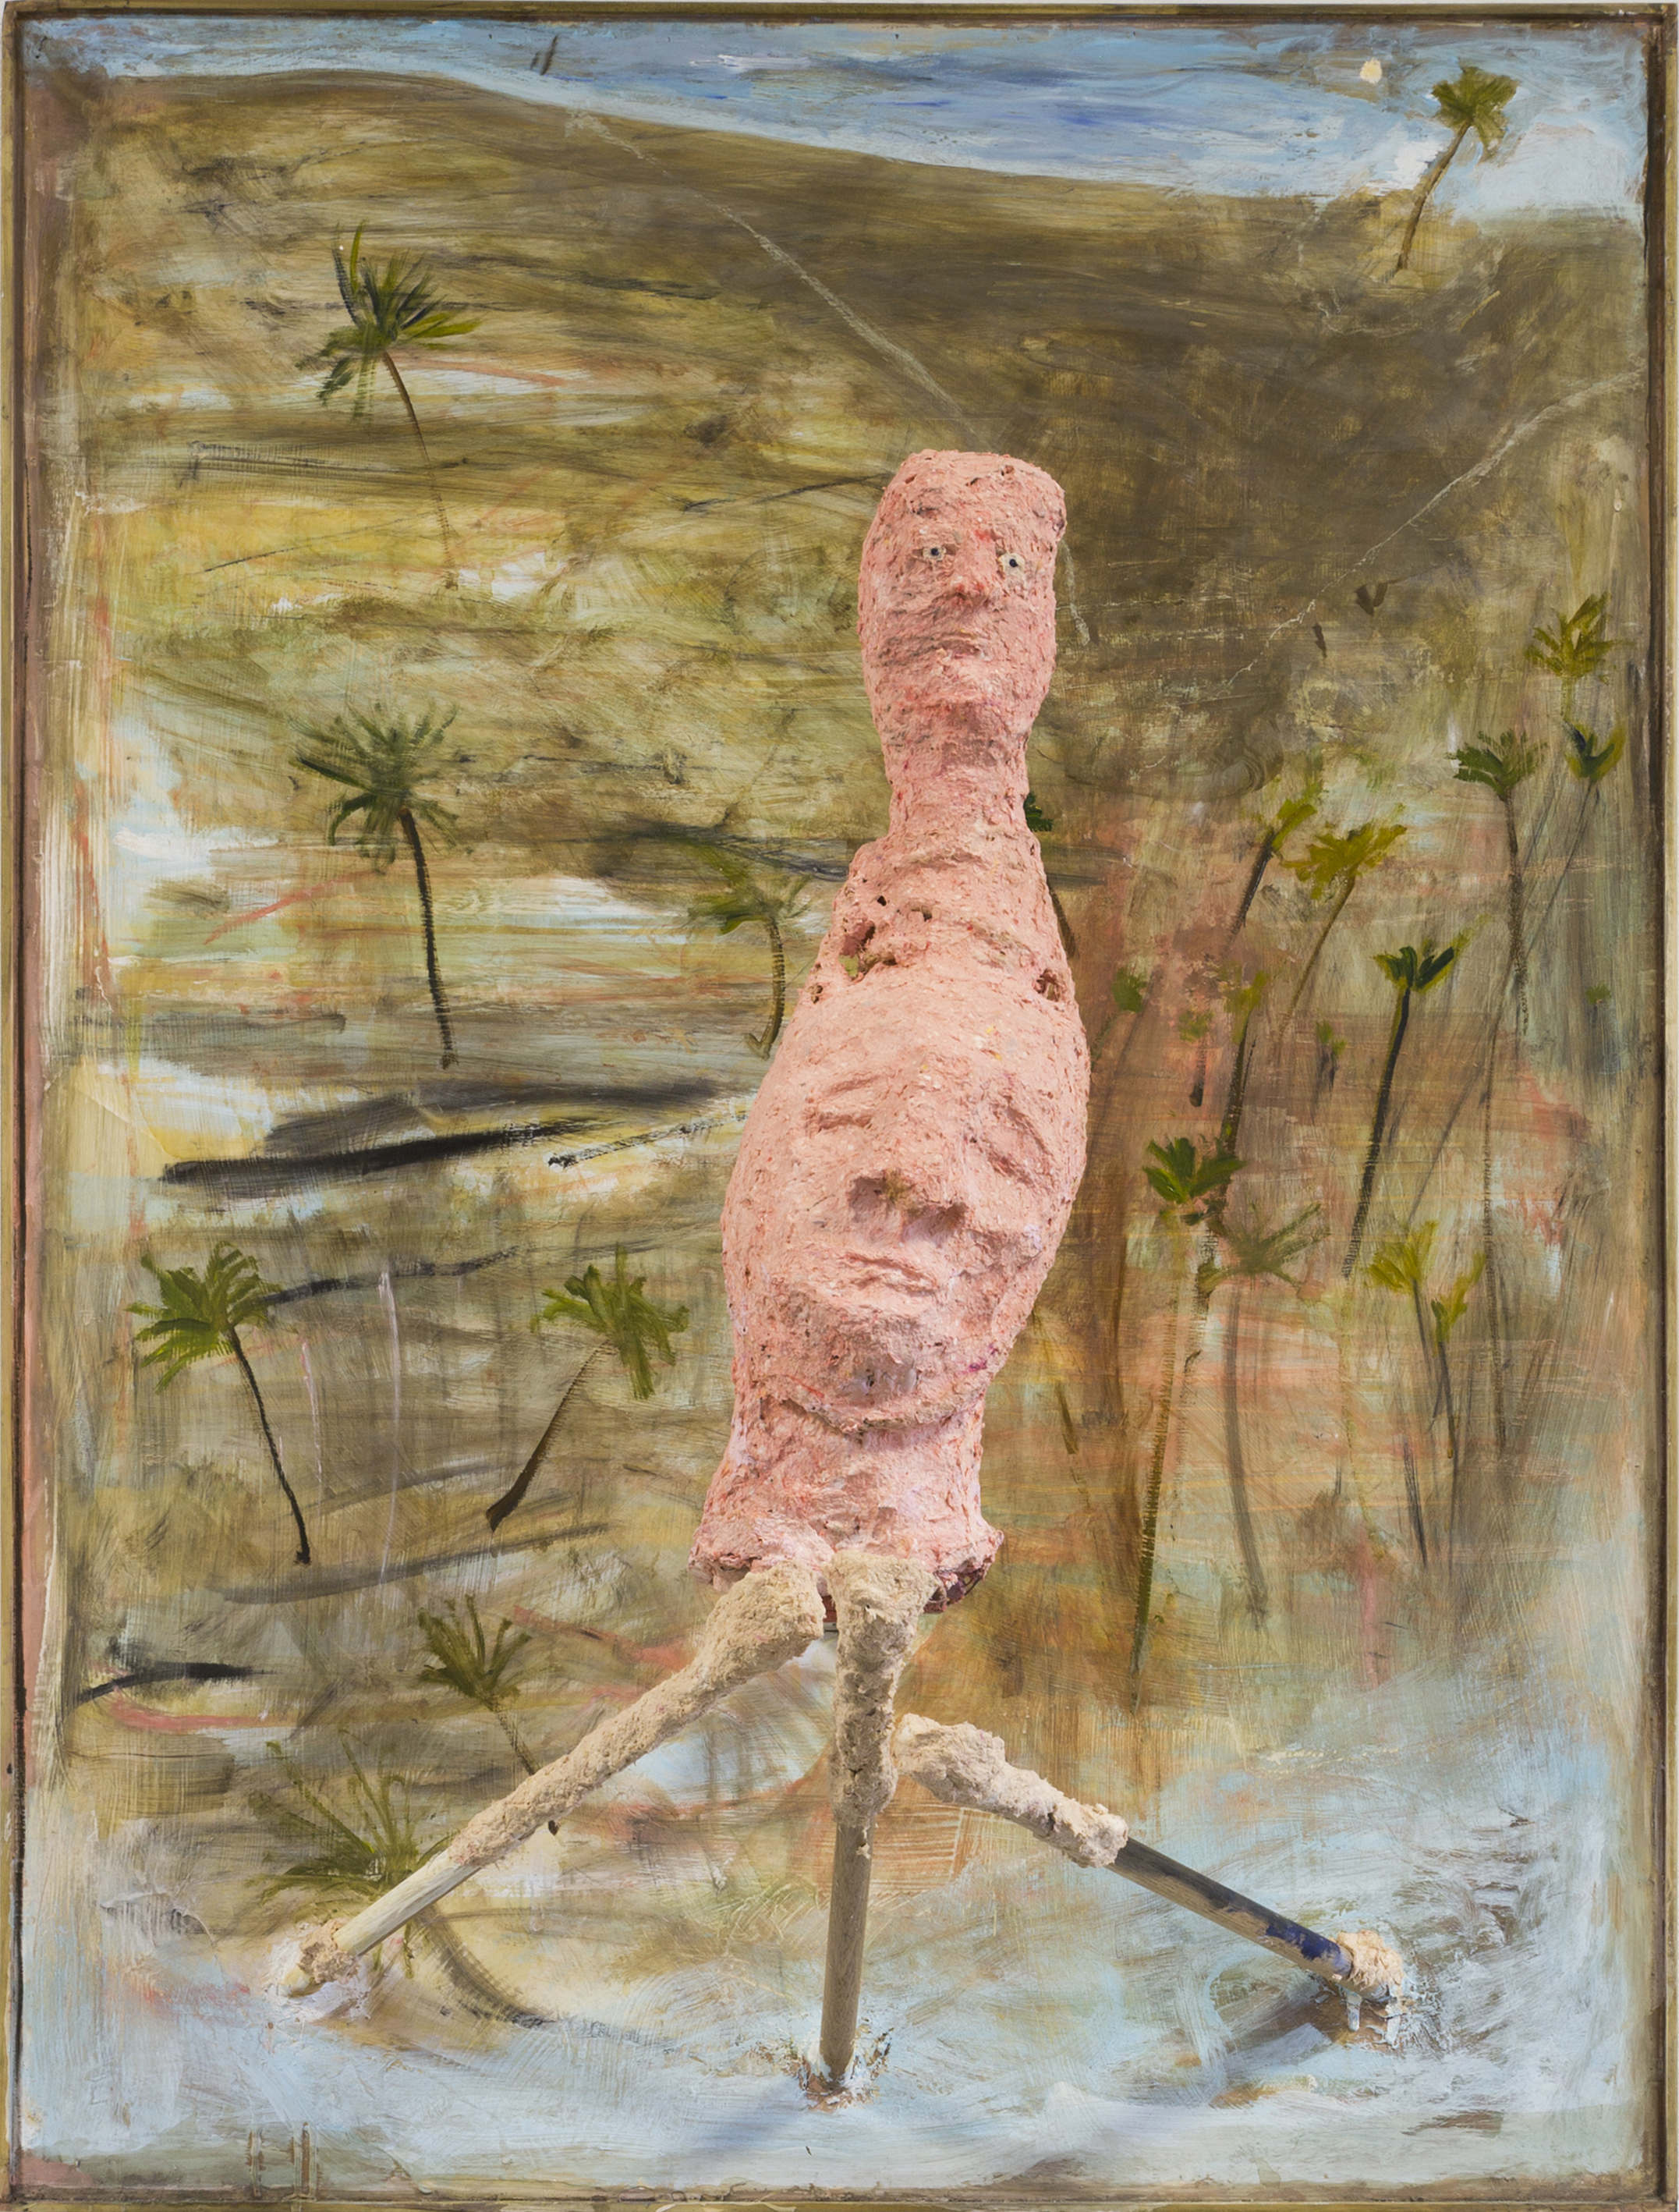 Head with Relic in Landscape 2016 Acrylic, plaster, paper mache, oil paint on board 180 x 90 x 60 cm